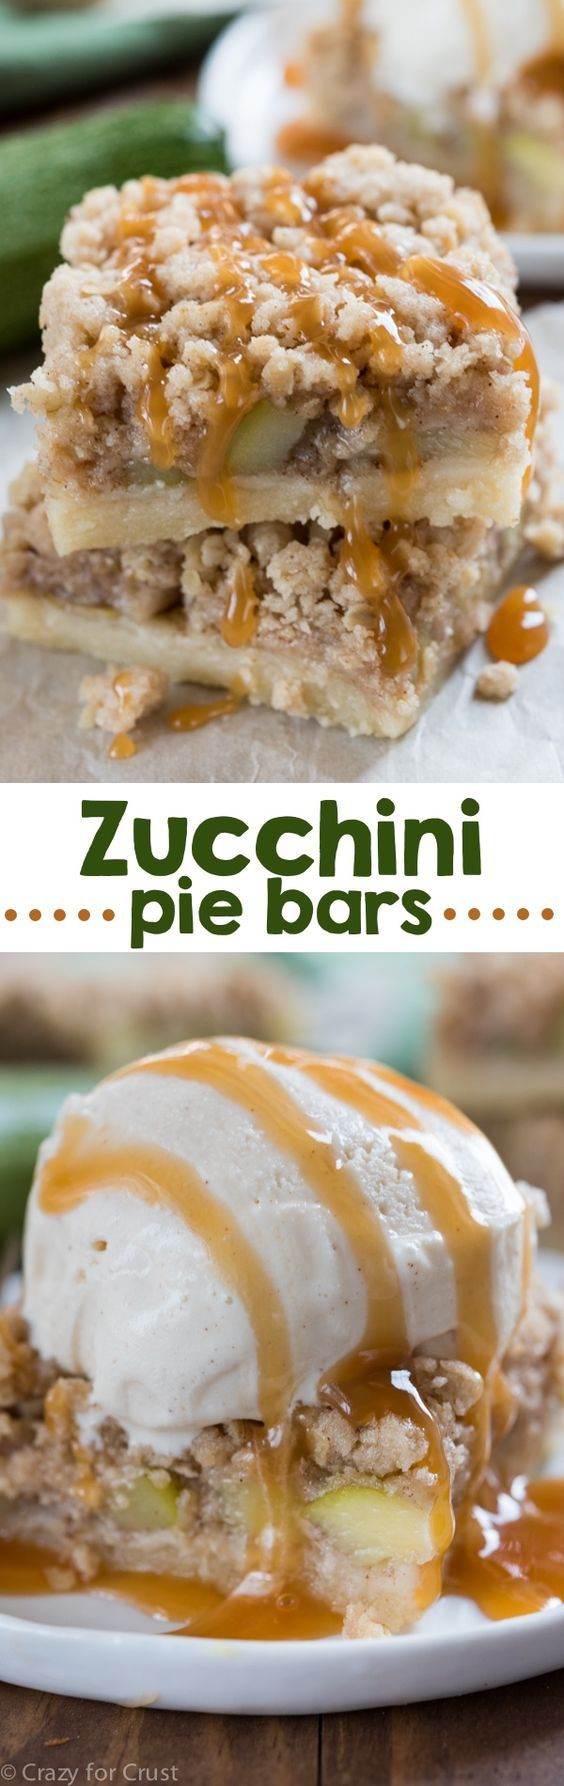 Zucchini Pie Bars - this pie bar recipe is full of zucchini but it tastes like apple, I promise. Plus, there is CRUMBLE topping!